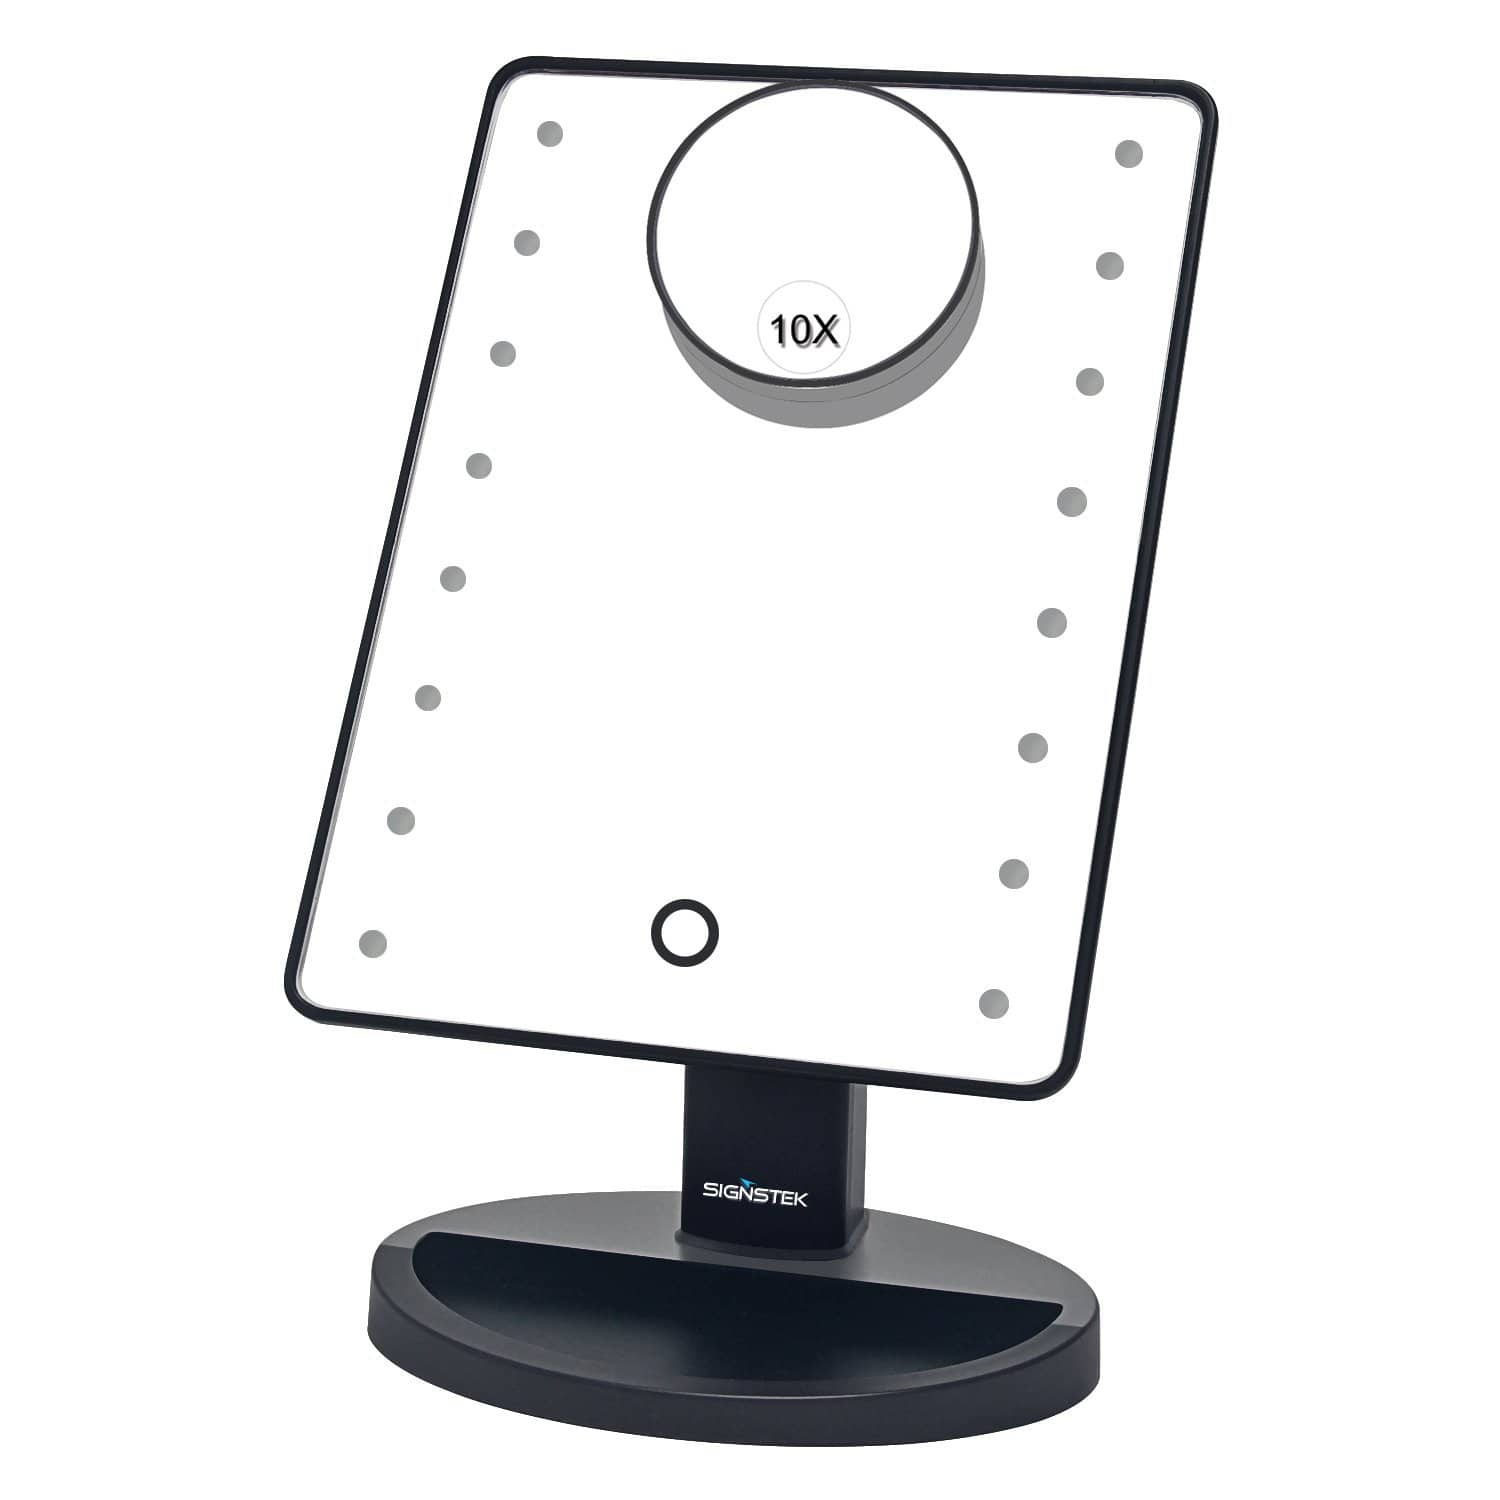 16 LED Touch Screen Lighted Vanity Cosmetic Make Up Mirror with 10x Magnification - $$11.99 -  FS/Amazon Prime